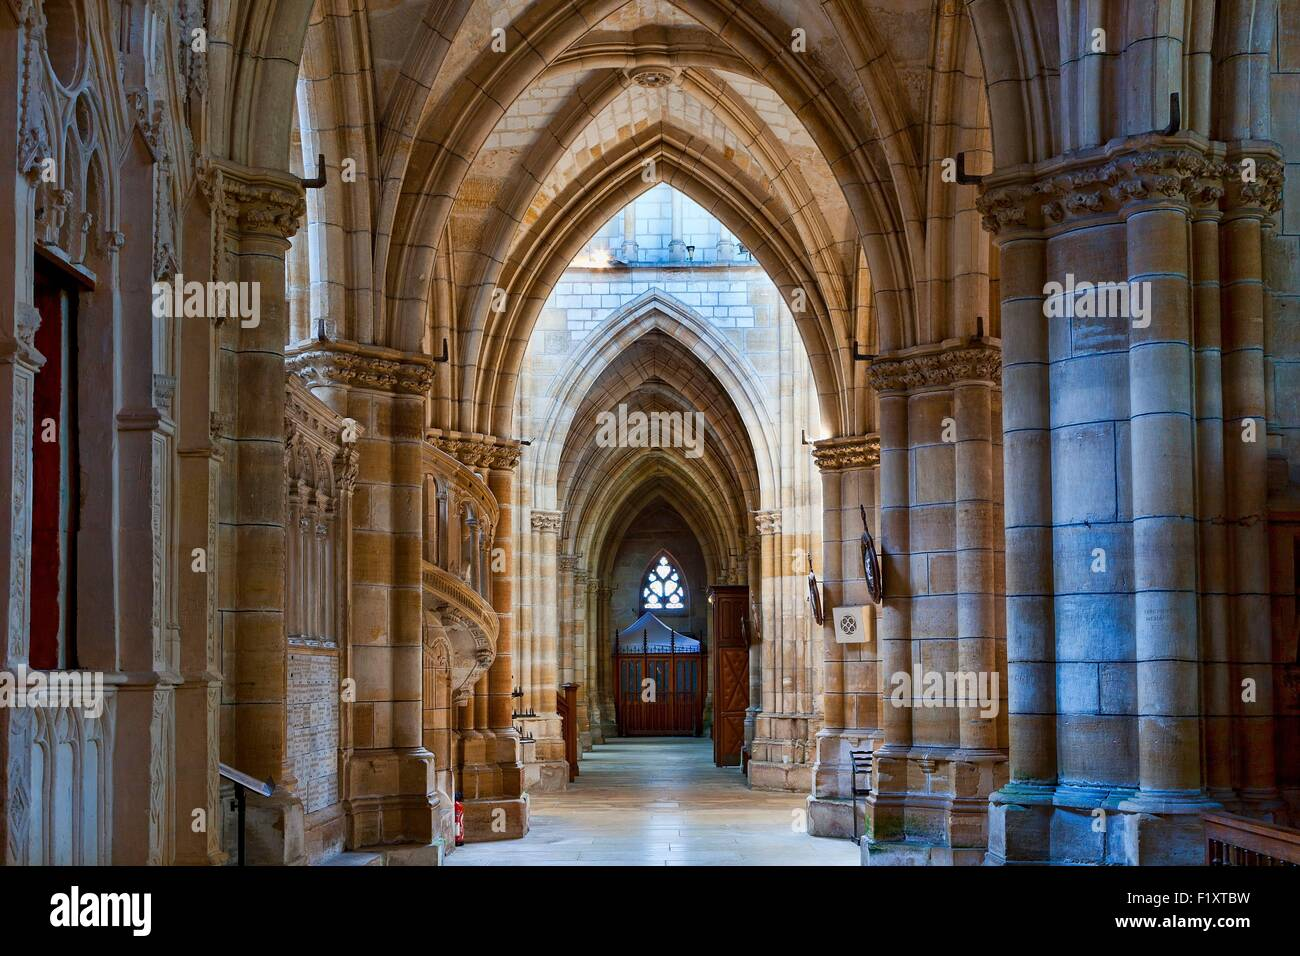 France, Marne, L'Epine, stop on the way of St James listed as World Heritage by UNESCO, Notre Dame basilica - Stock Image